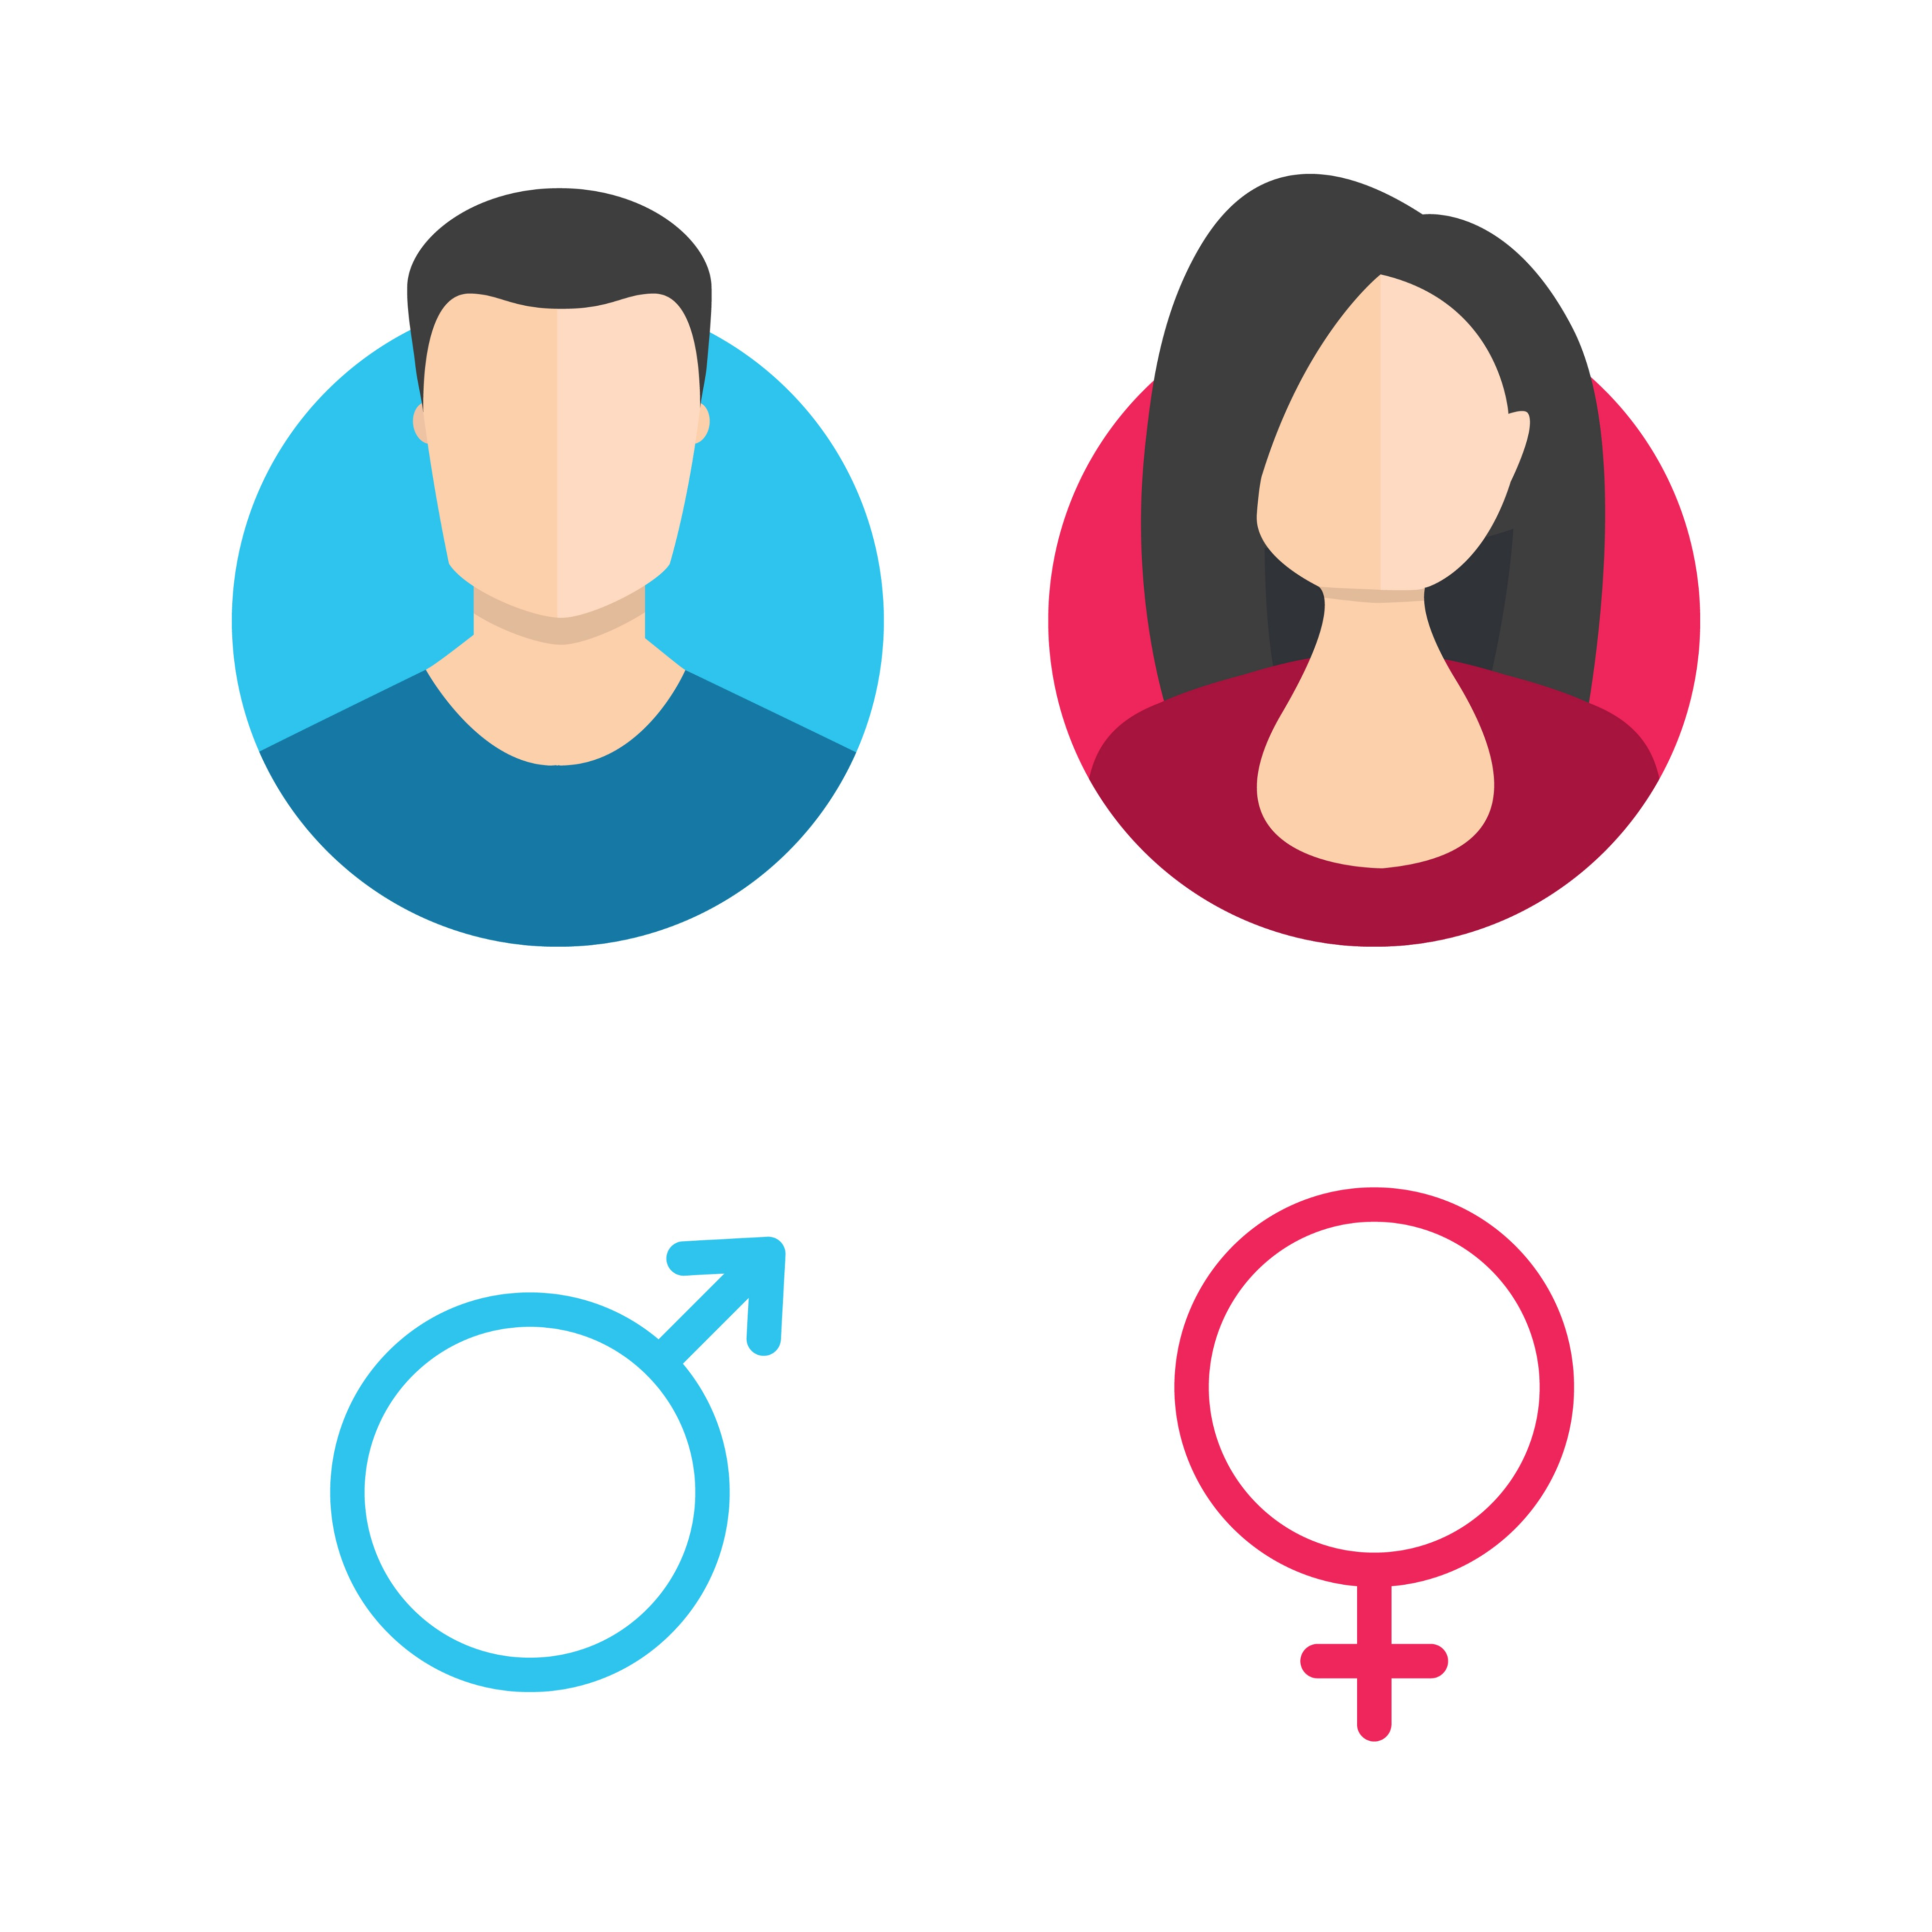 Illustration showing the two sexes - male and female and their related icons